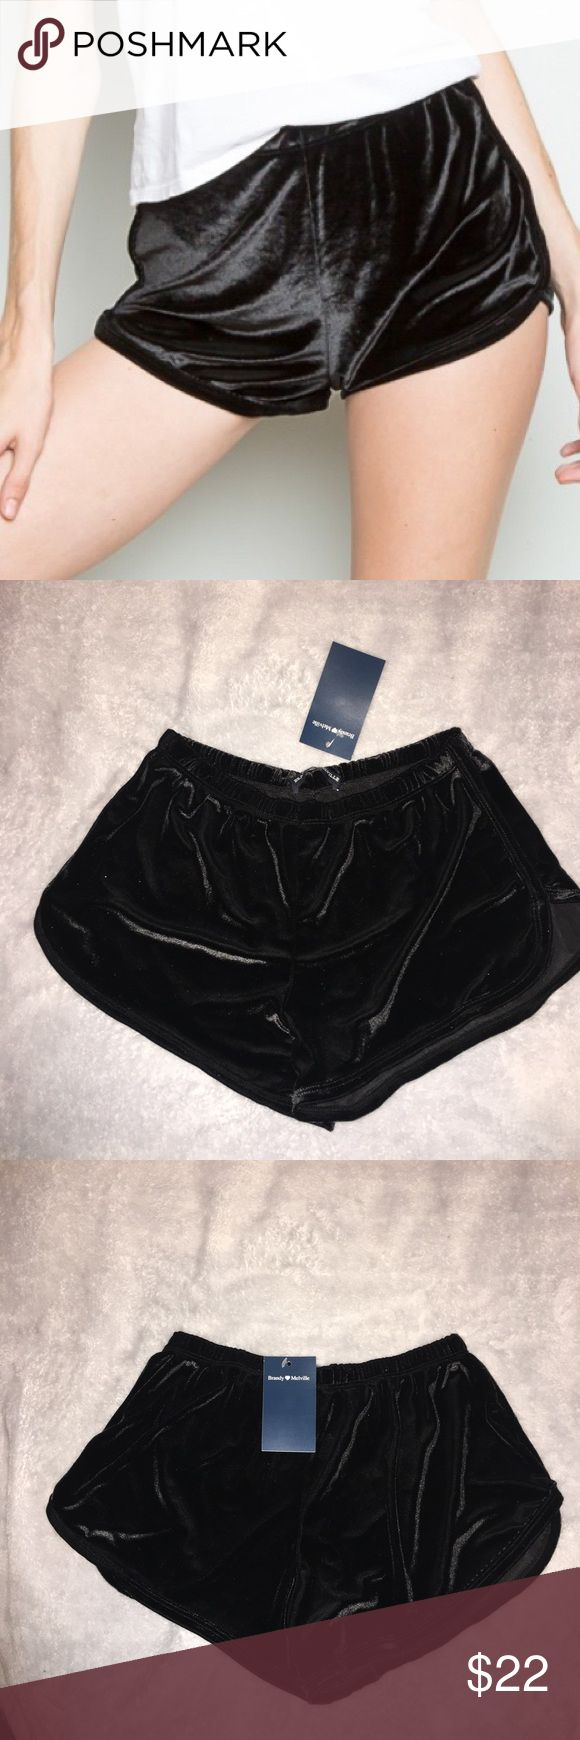 24 HR FLASH SALE Brandy Melville Velvet Lisette BNWT • Fits XS-M Perfect Condition  Price is Firm ❣️ Brandy Melville Shorts